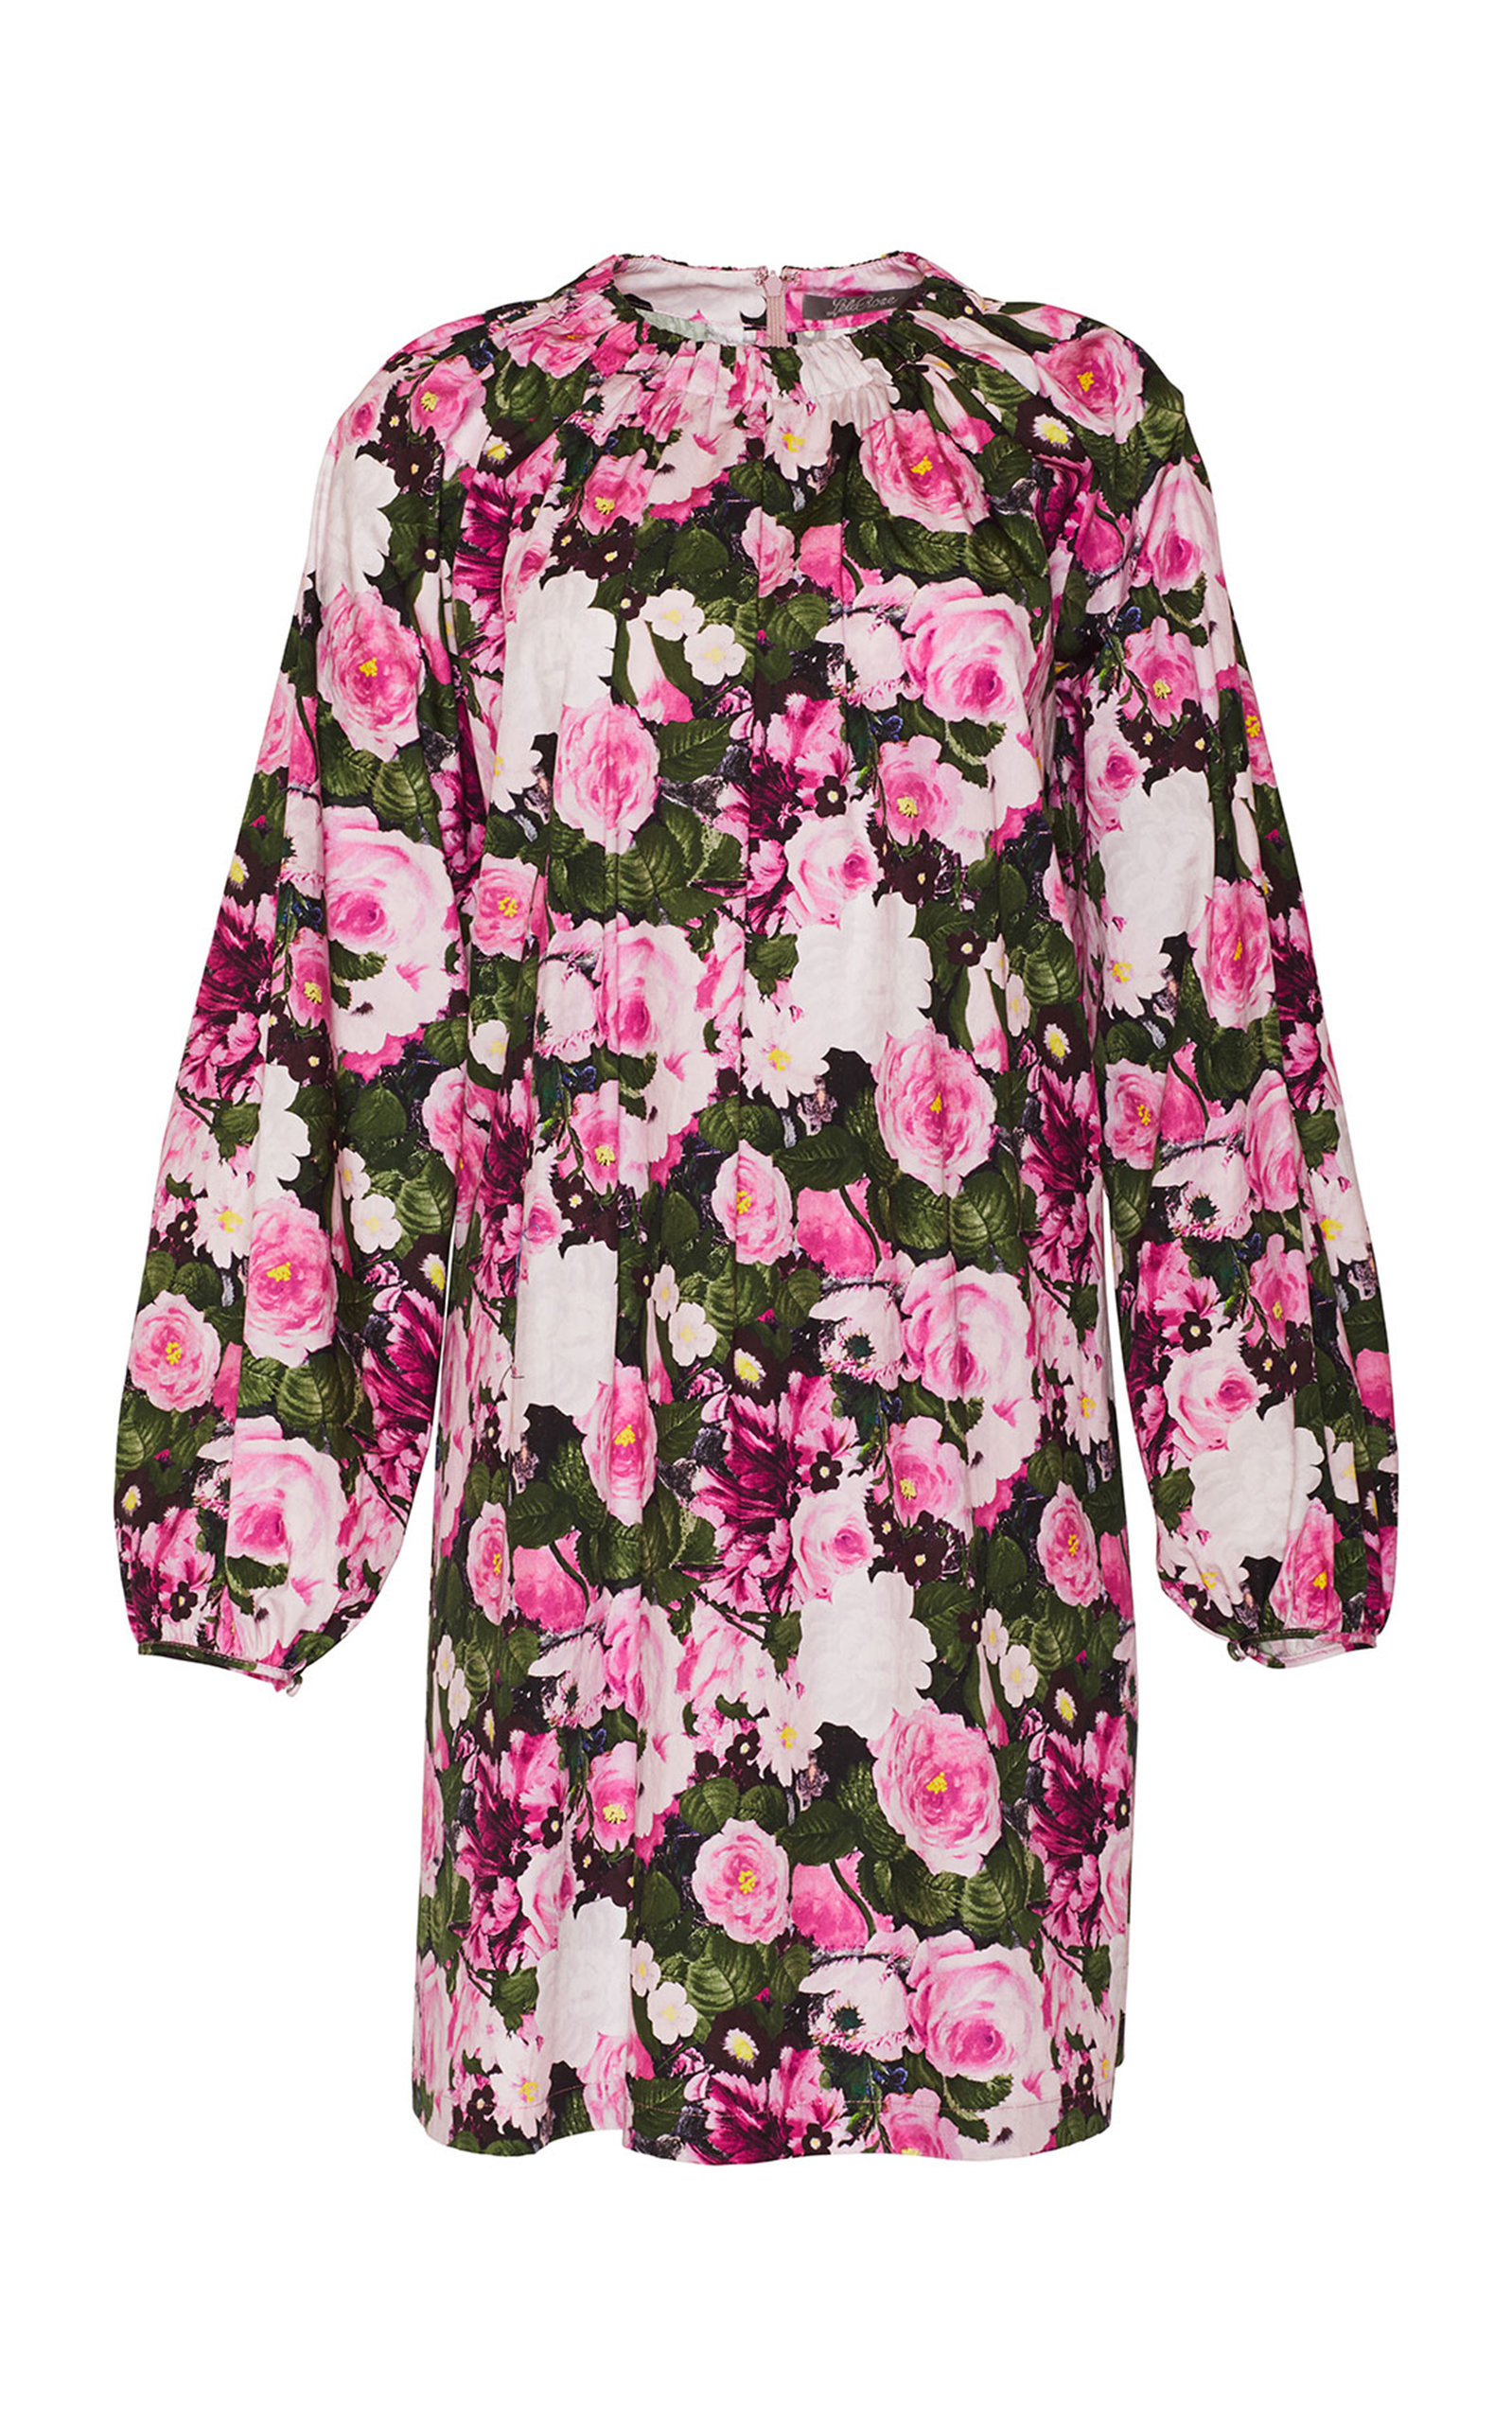 Women's Floral Printed Cotton Tunic Dress With Ruched Neckline